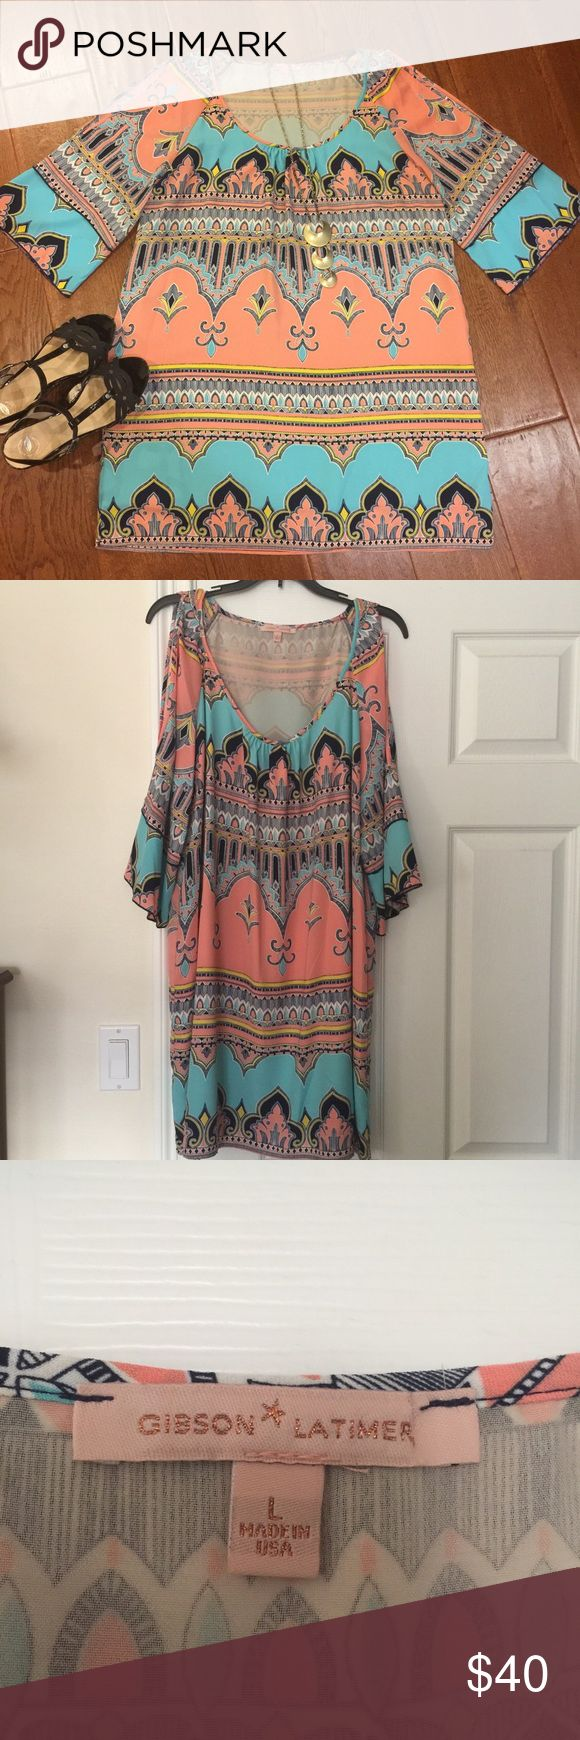 """🐣SALE🐥Beautiful Moroccan tile dress Show off a little in this slit-sleeve dress.  Full sleeve, fully lined, worn once. It is lovely, just too much of a departure from my """"black over black """" uniform. 😅 Gibson Latimer Dresses"""